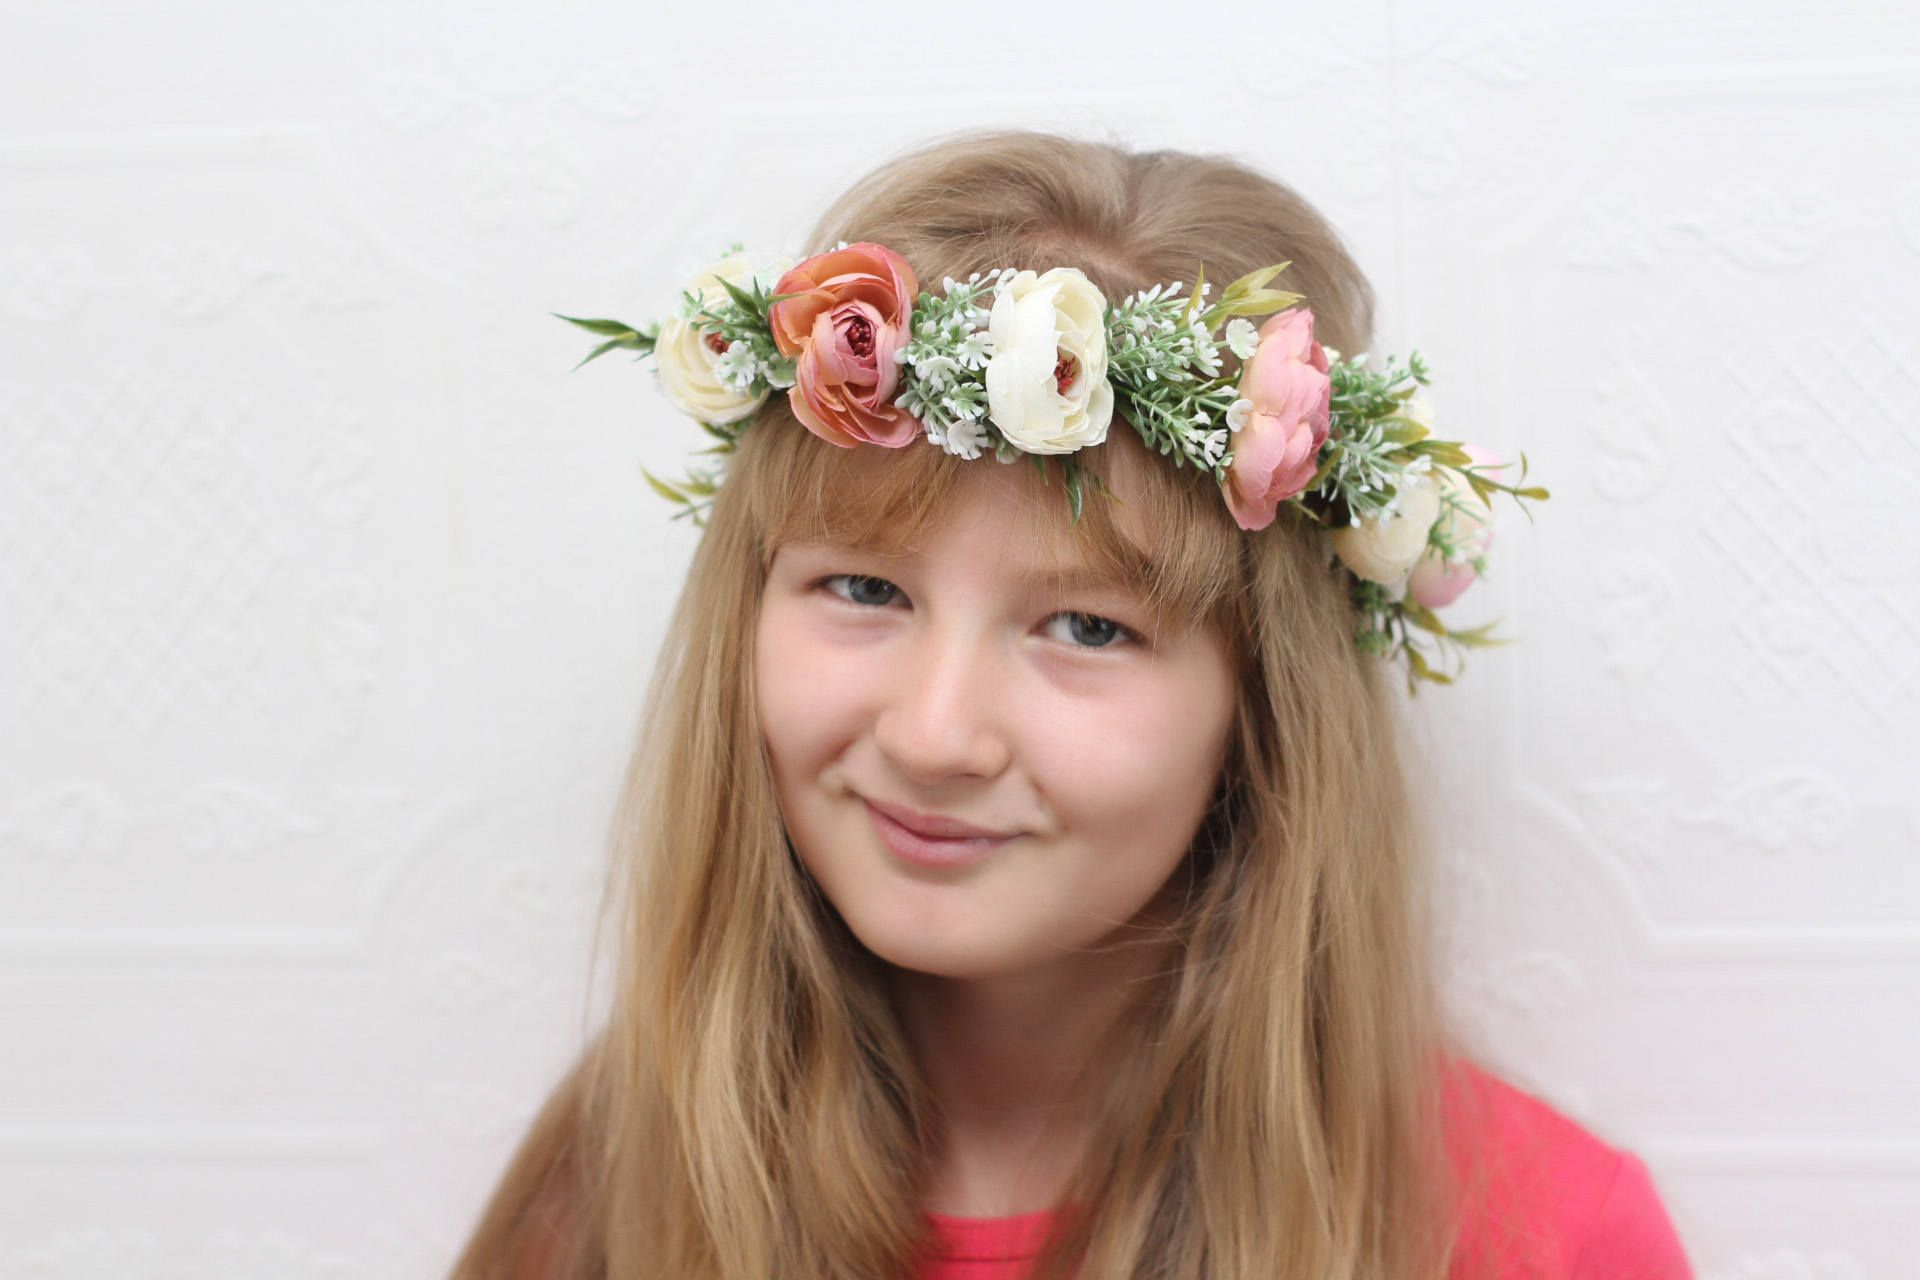 Bridal flower crown wreath floral crown wedding crown bridesmaid bridal flower crown wreath floral crown wedding crown bridesmaid crown bohemian flower crown wedding crown bohemian izmirmasajfo